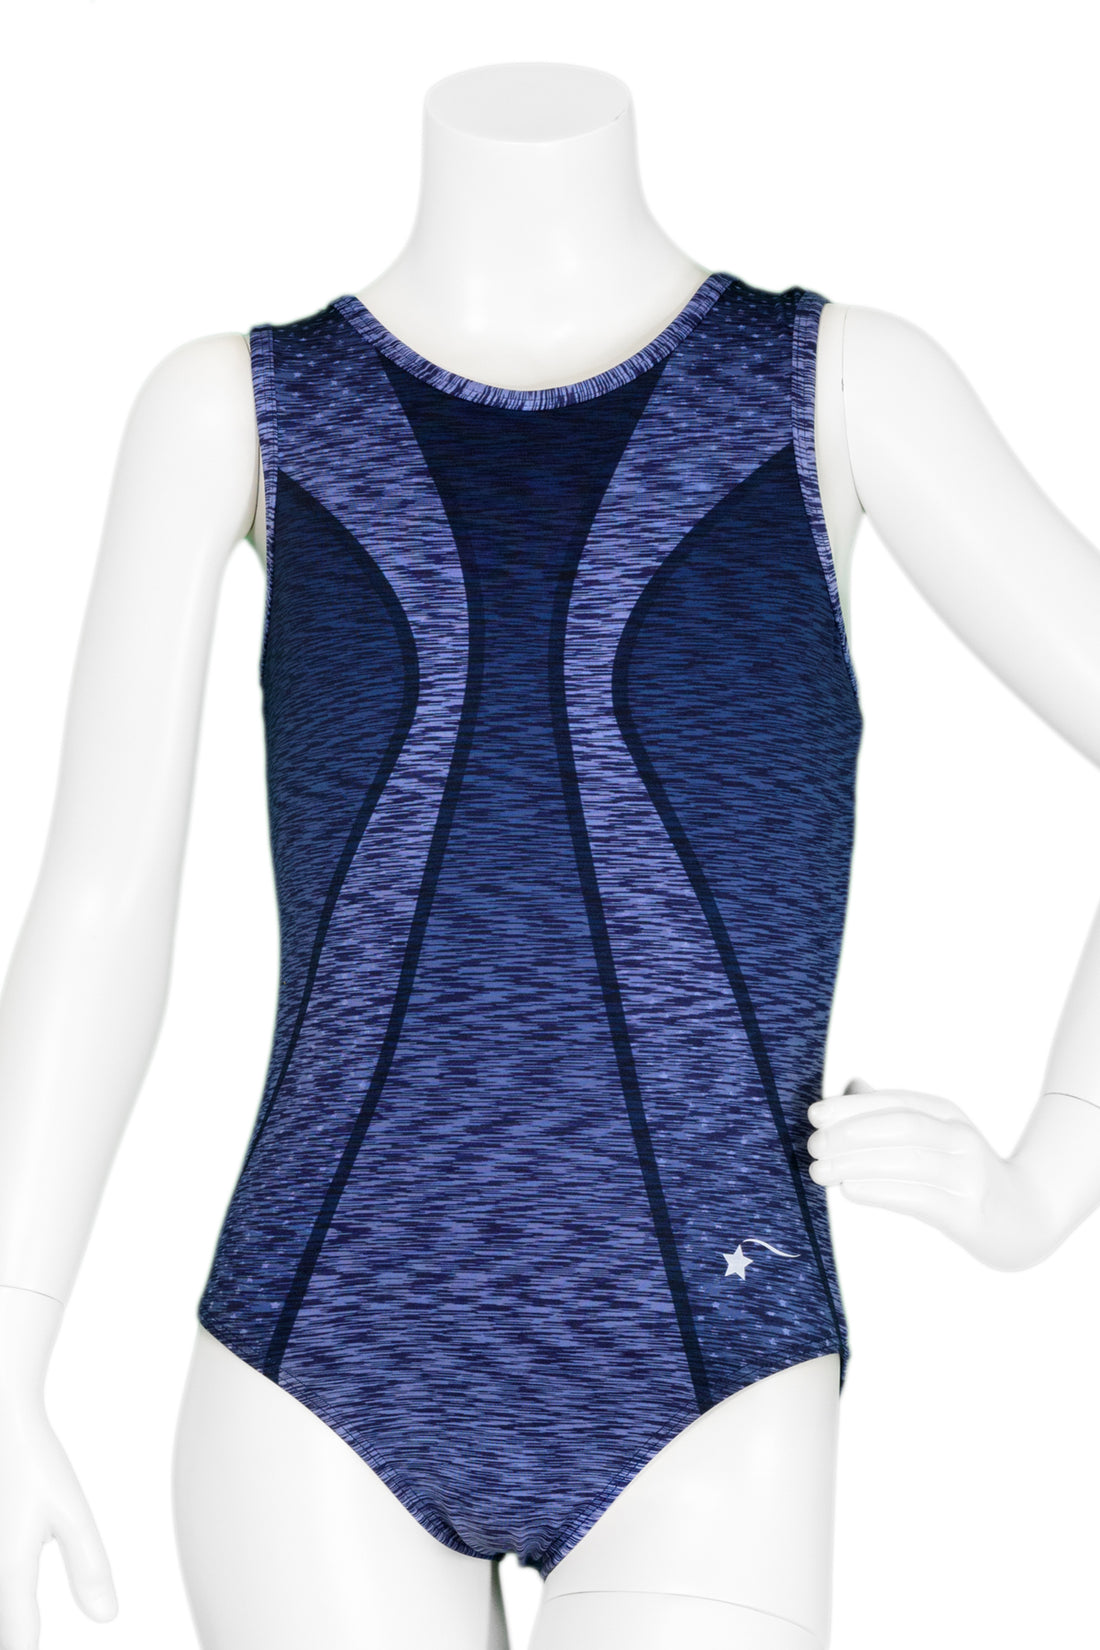 Pike Navy Racerback